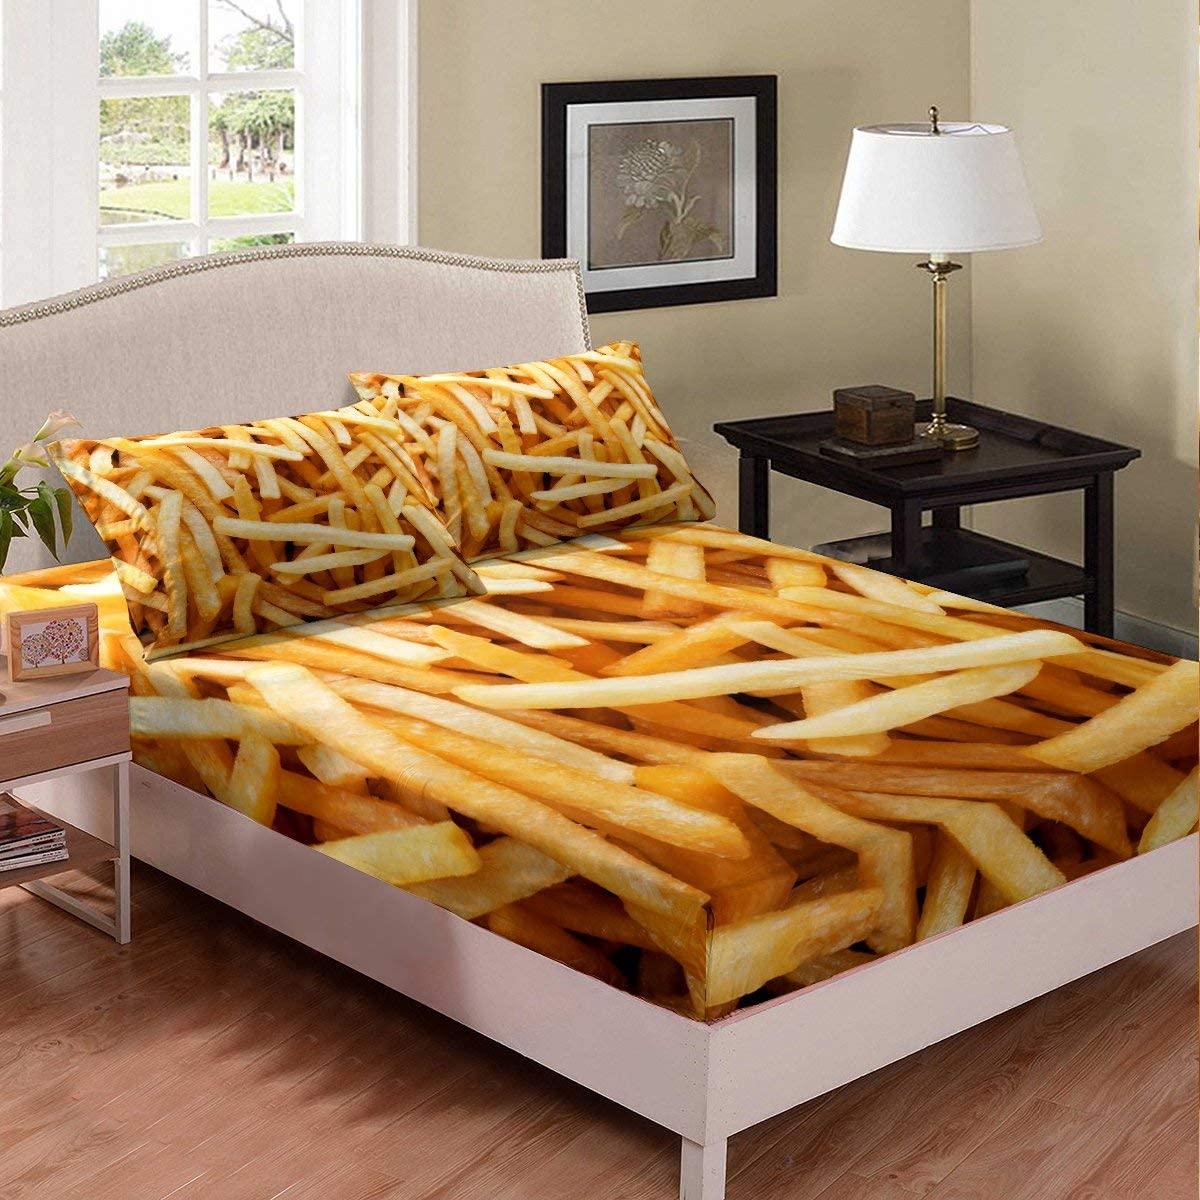 Erosebridal Nursery French Fries Sheet Set Fried Food Fitted Sheet for Junk Food Lovers Golden Potato Chips Bedding Set Fast Food Print Bed Cover with 1 Pillow Case TwinXL Bedroom Decoration